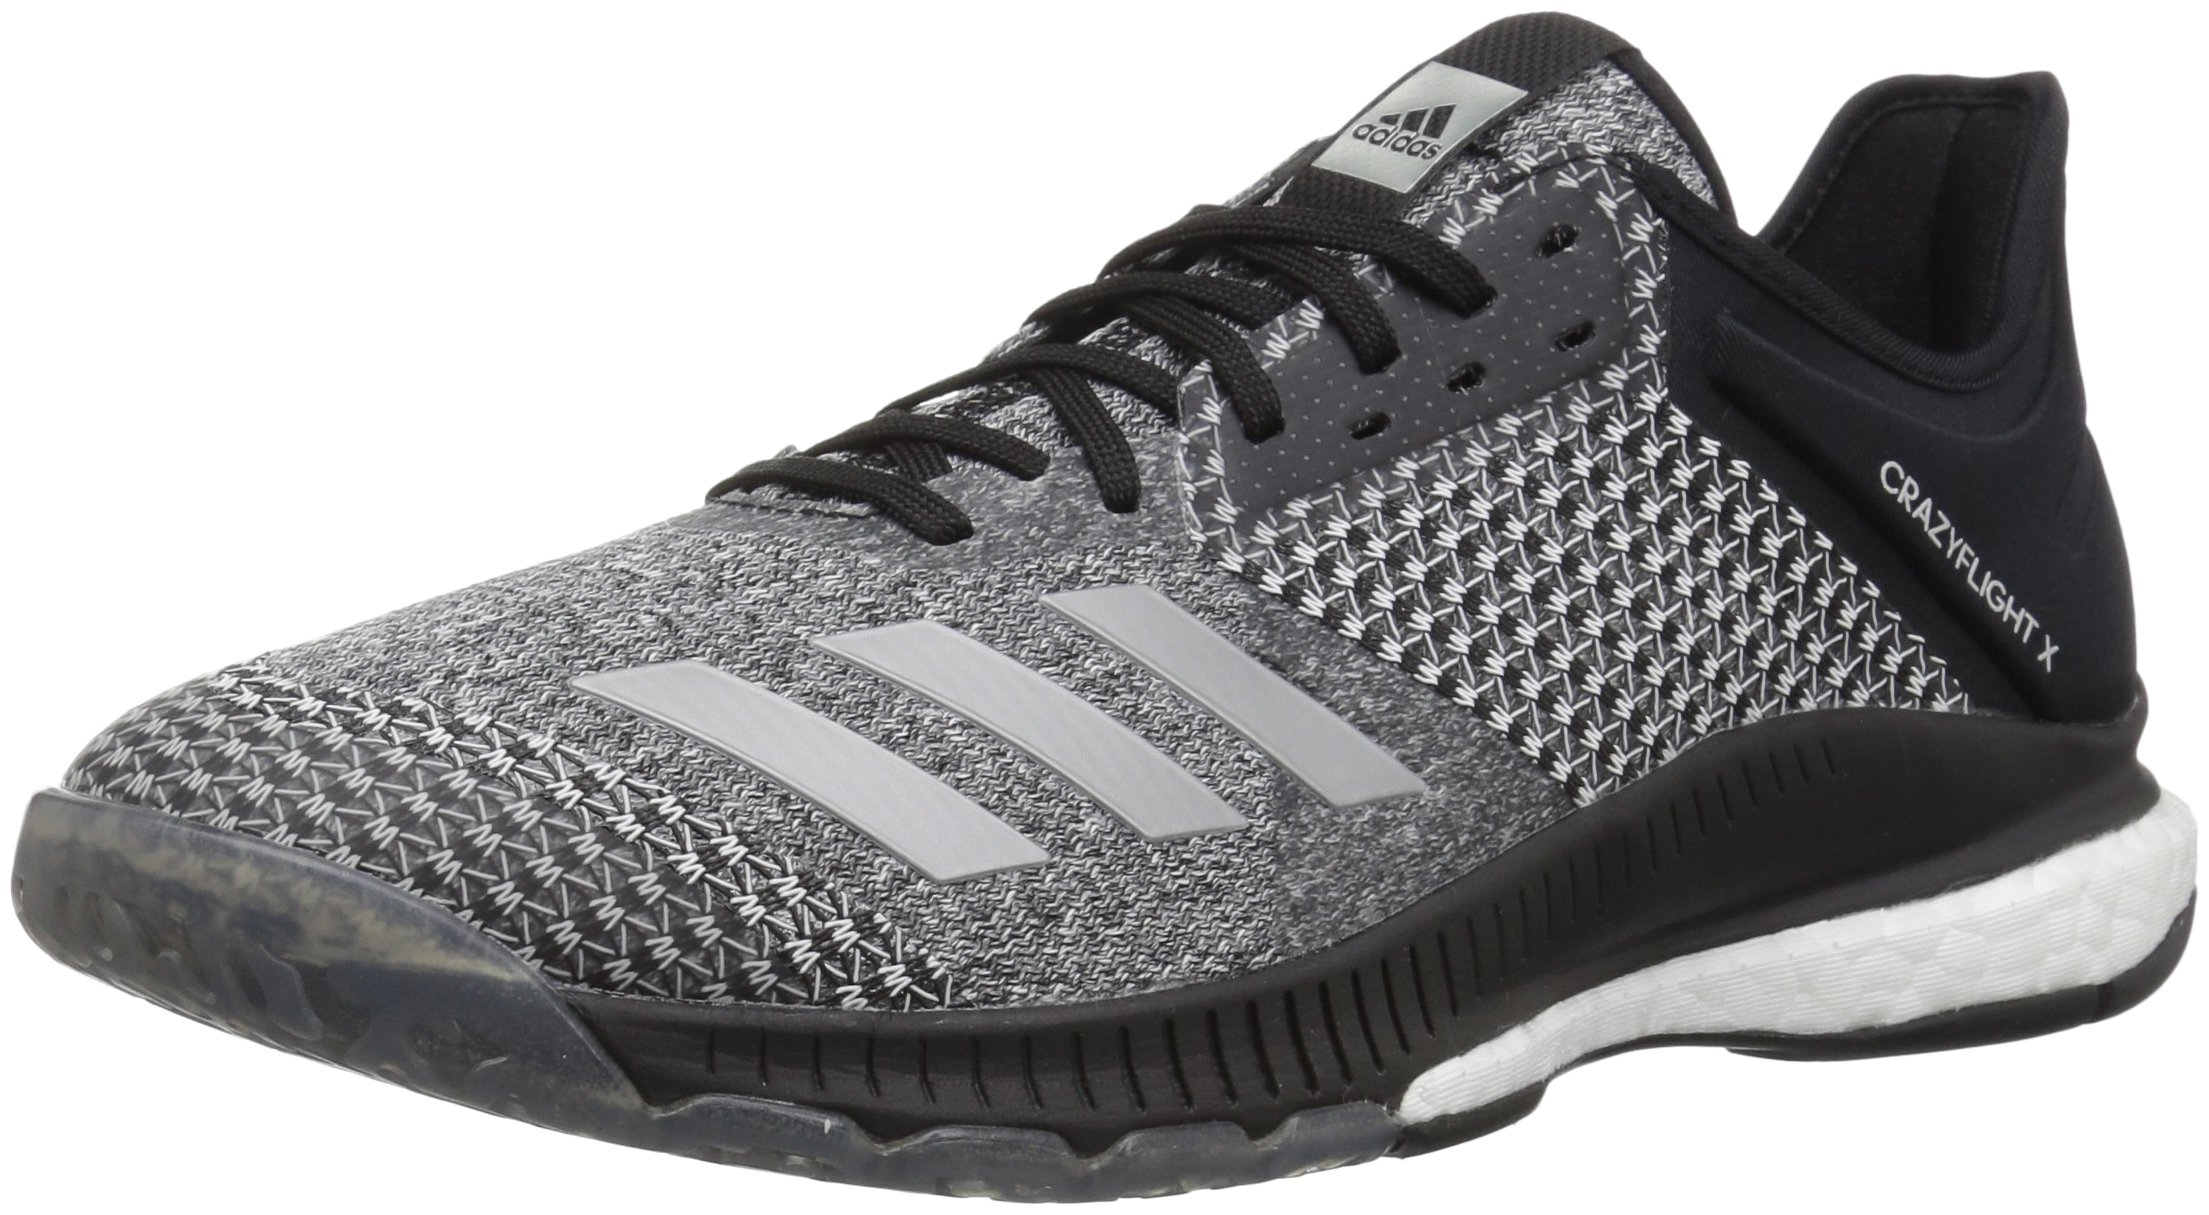 adidas Women's Crazyflight X 2 Volleyball Shoe, Black/Silver Metallic/White, 7 M US by adidas